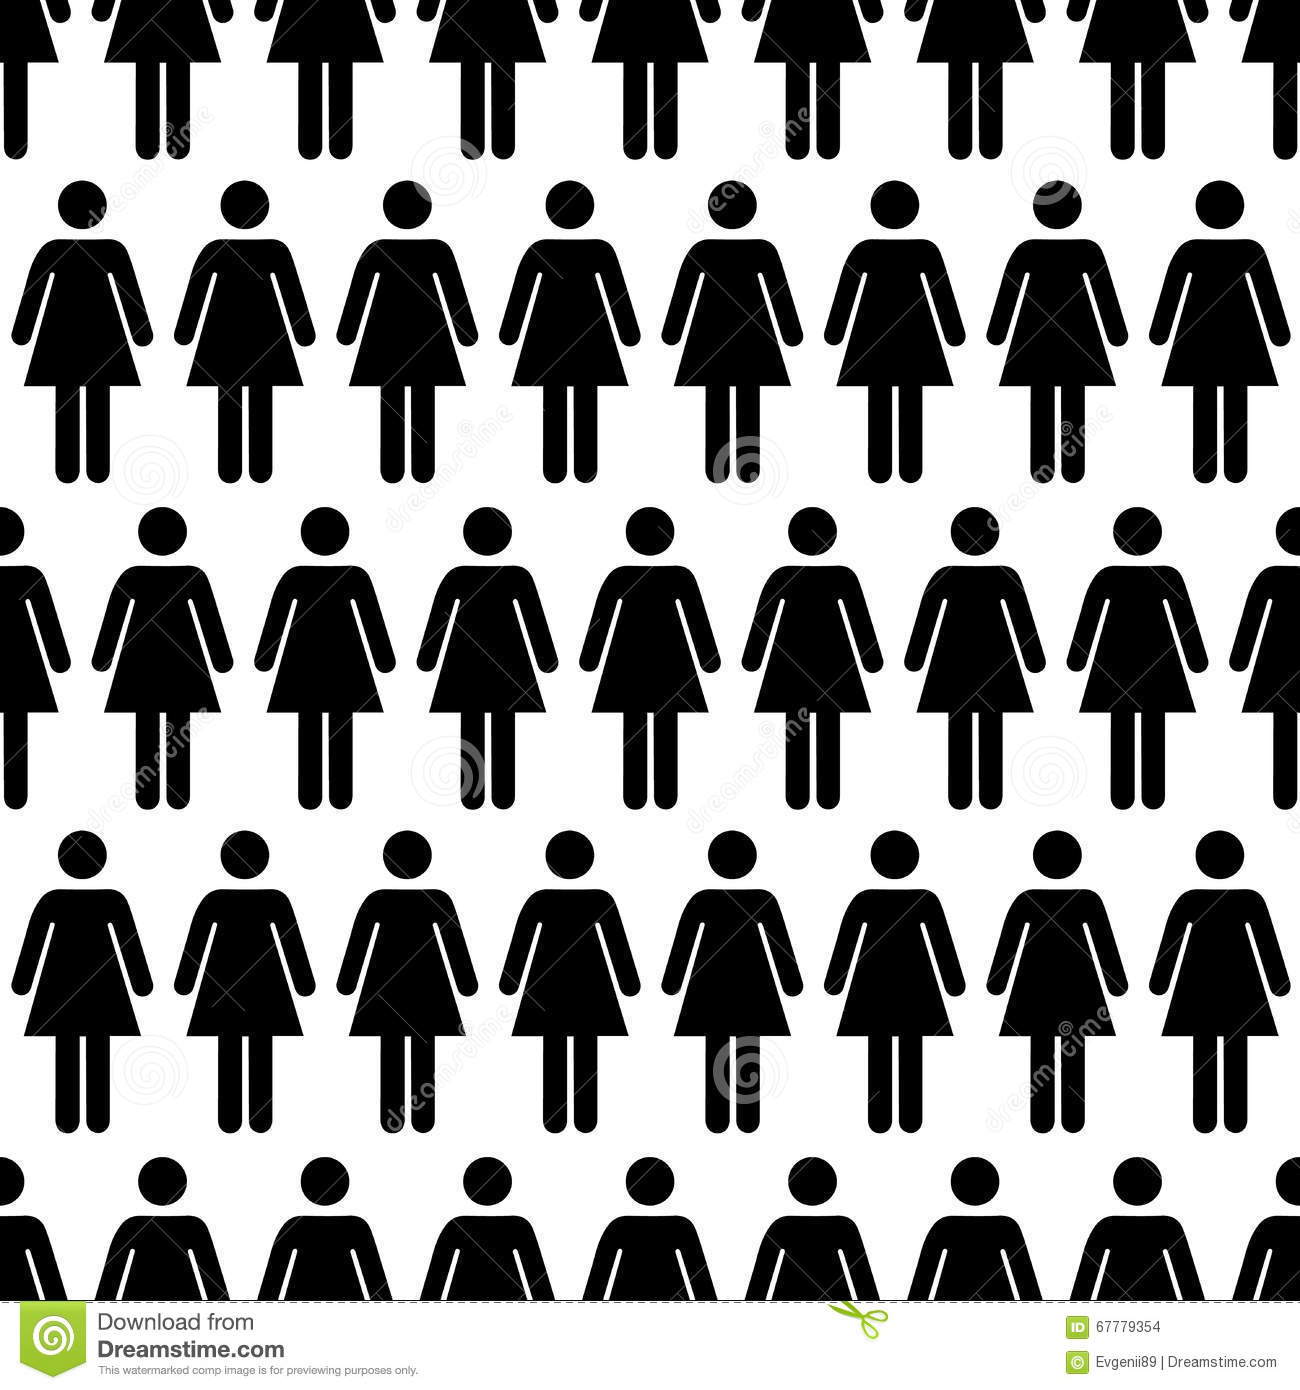 Crowd Of Indian Women Vector Avatars Stock Vector: Crowd Of Black Simple Women Icons On White, Seamless